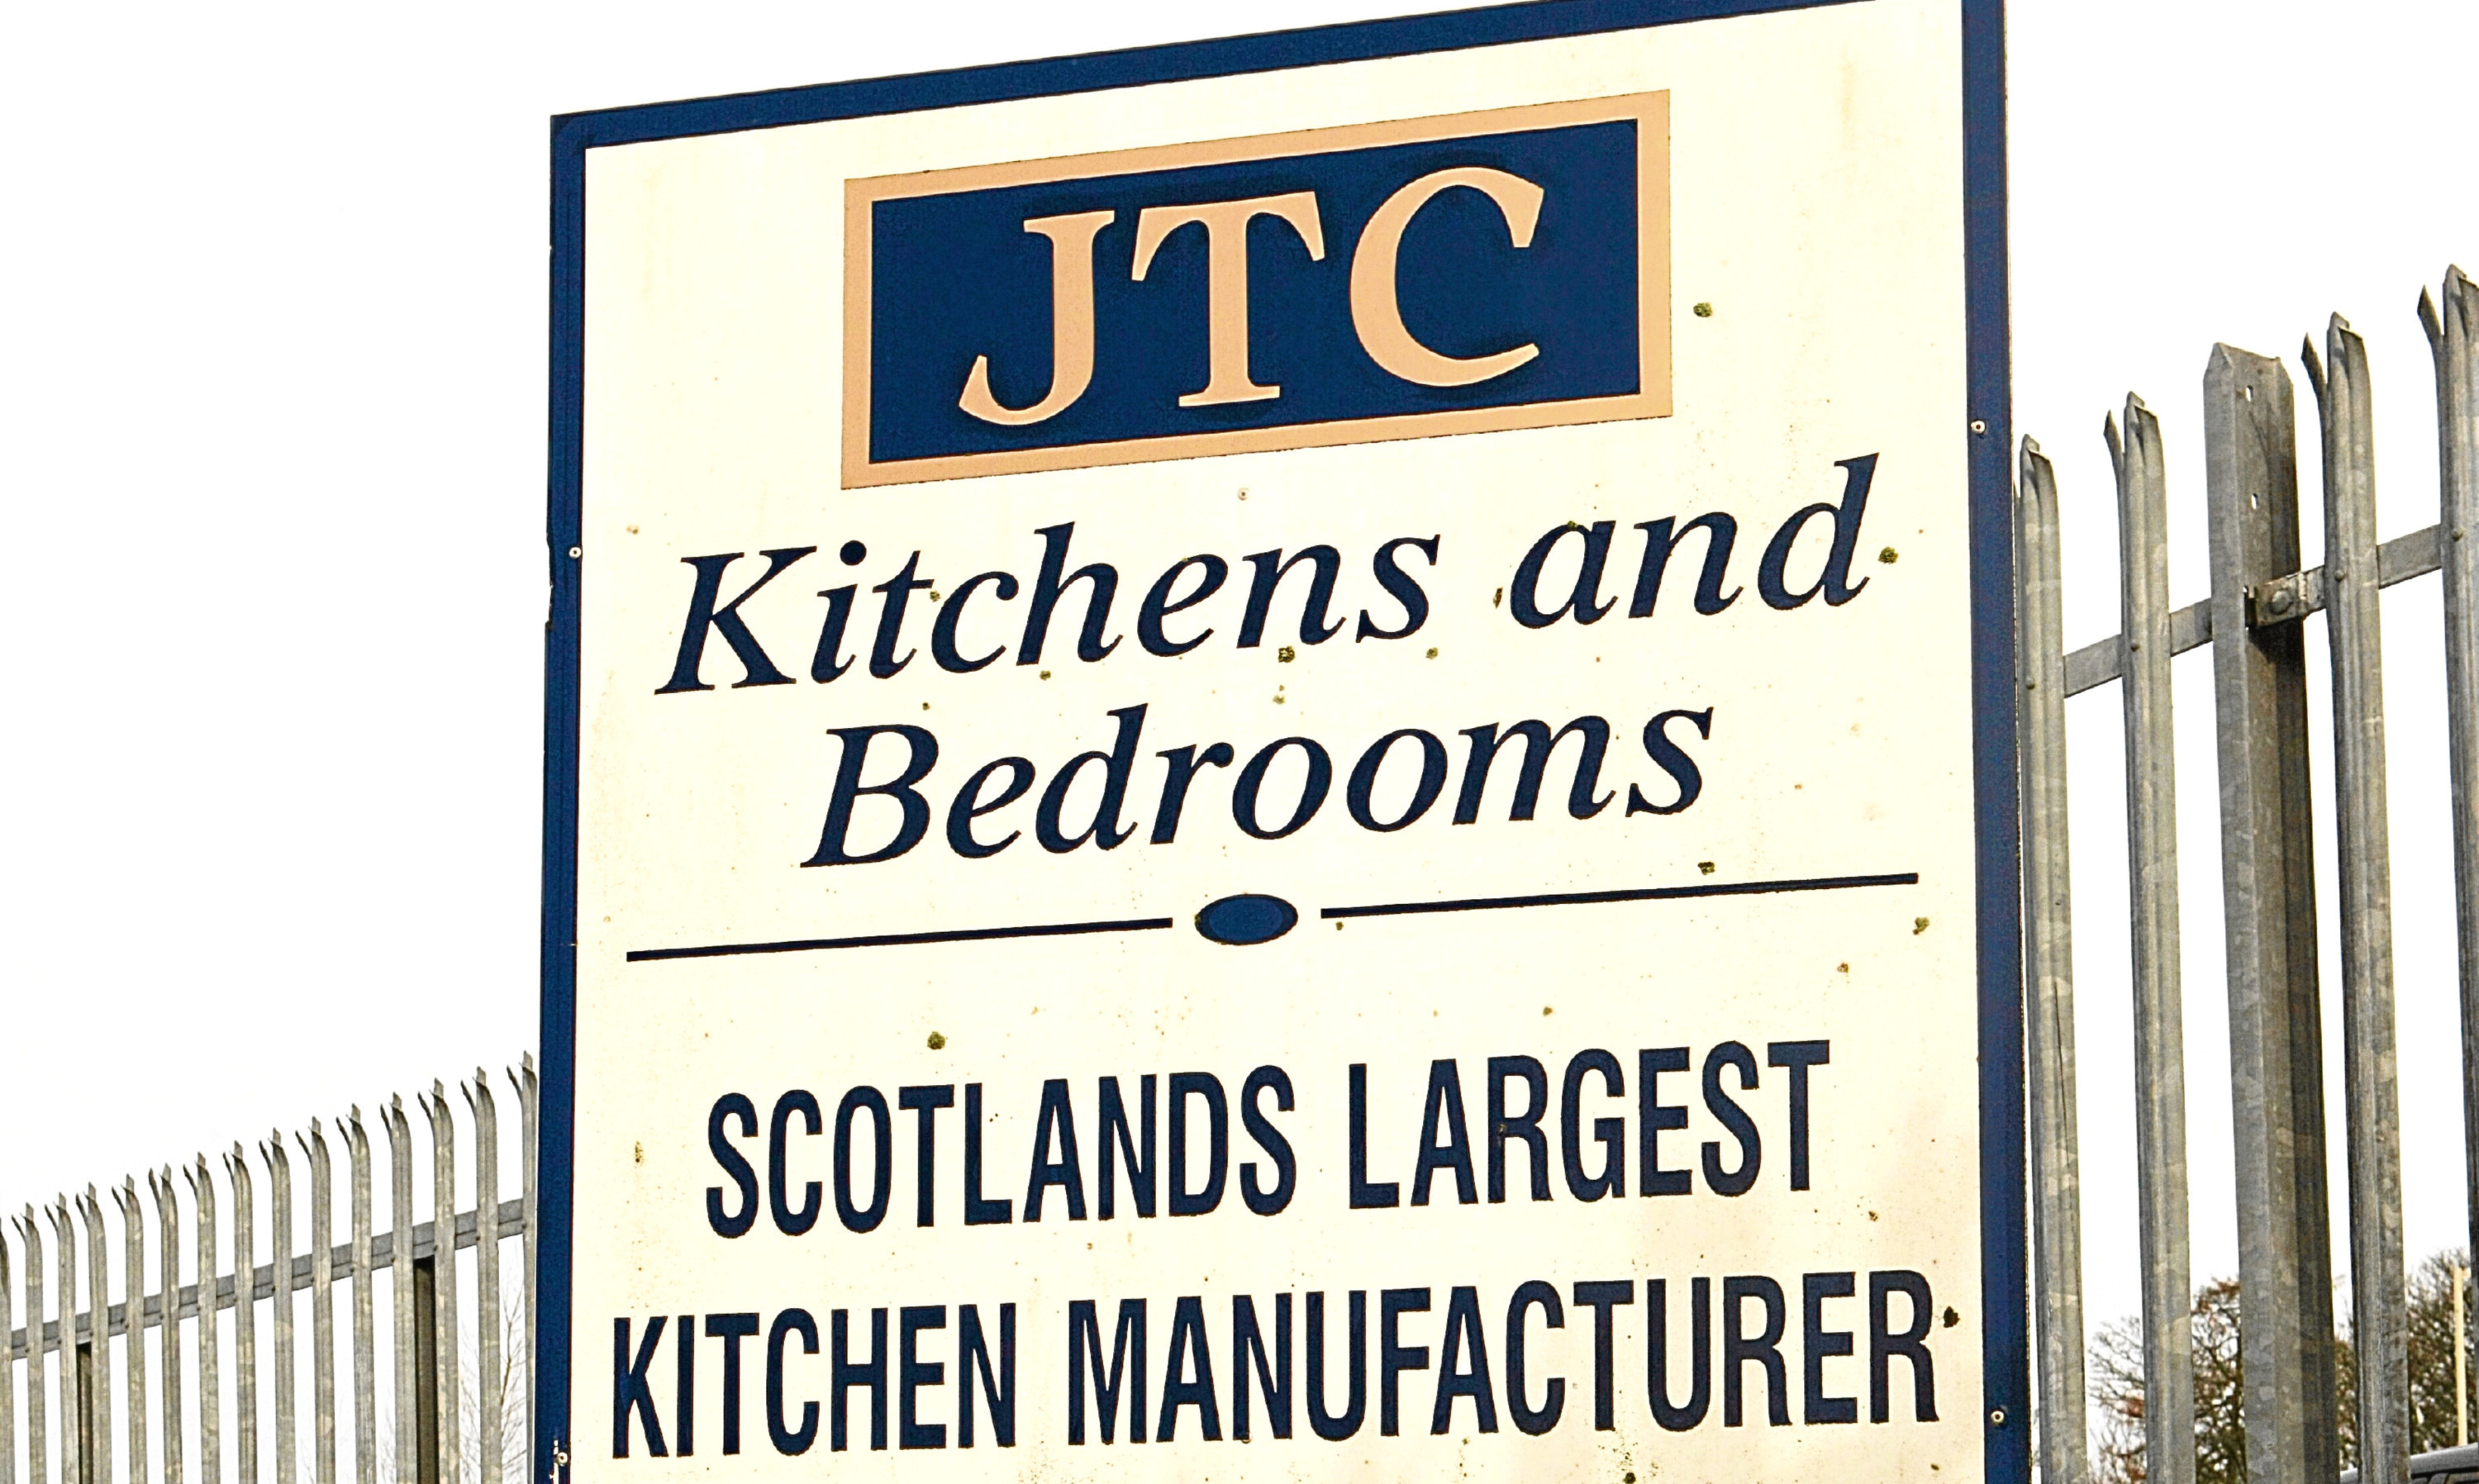 Dundee-based JTC is a specialist furniture manufacturer